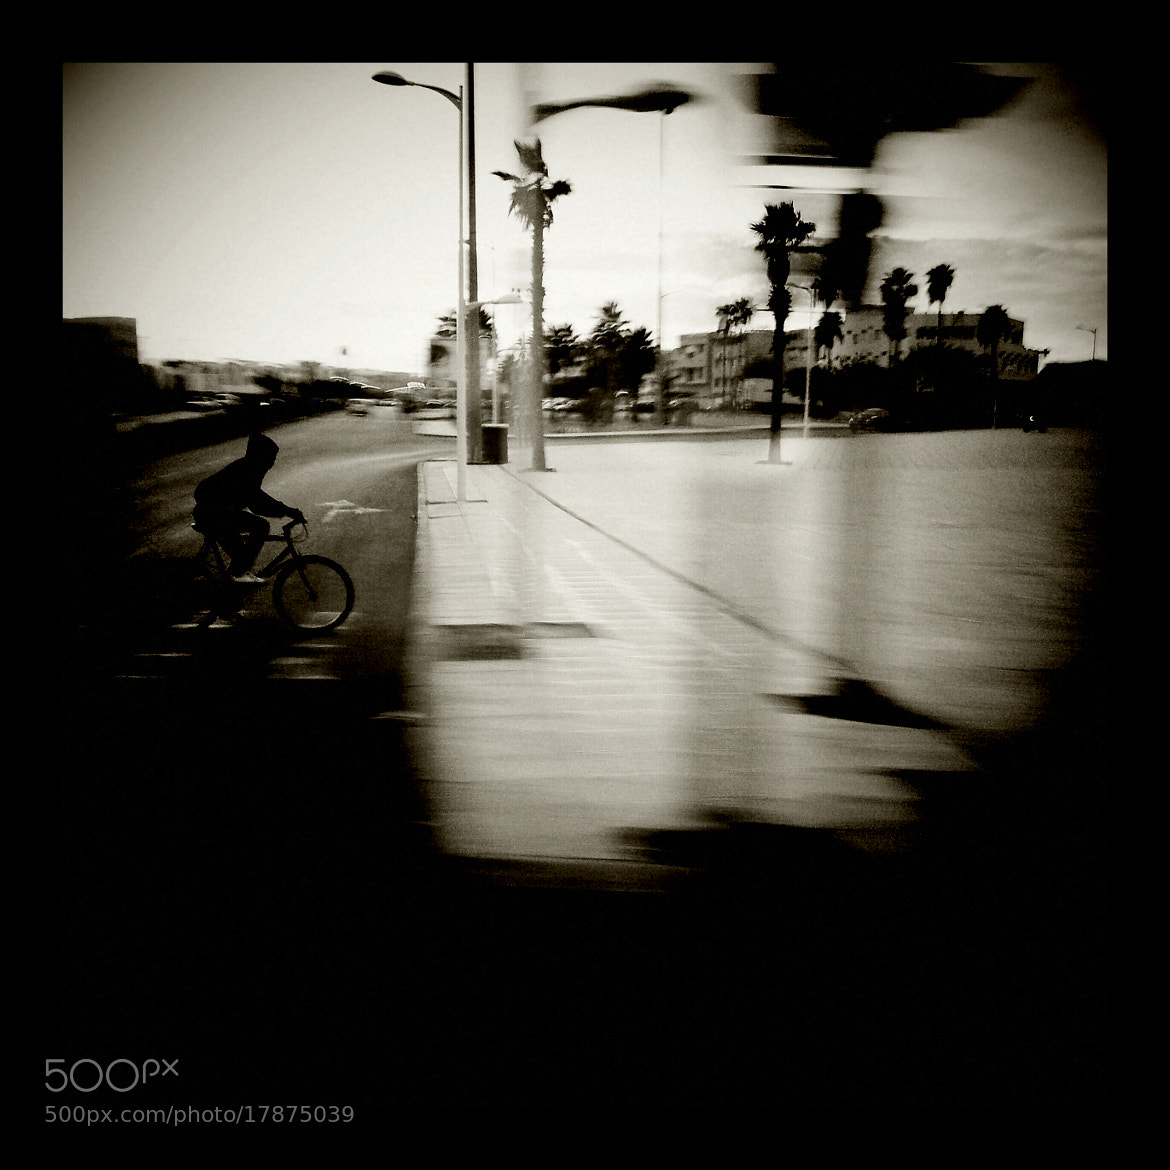 Photograph The dark cyclist by Youssef Amerniss on 500px